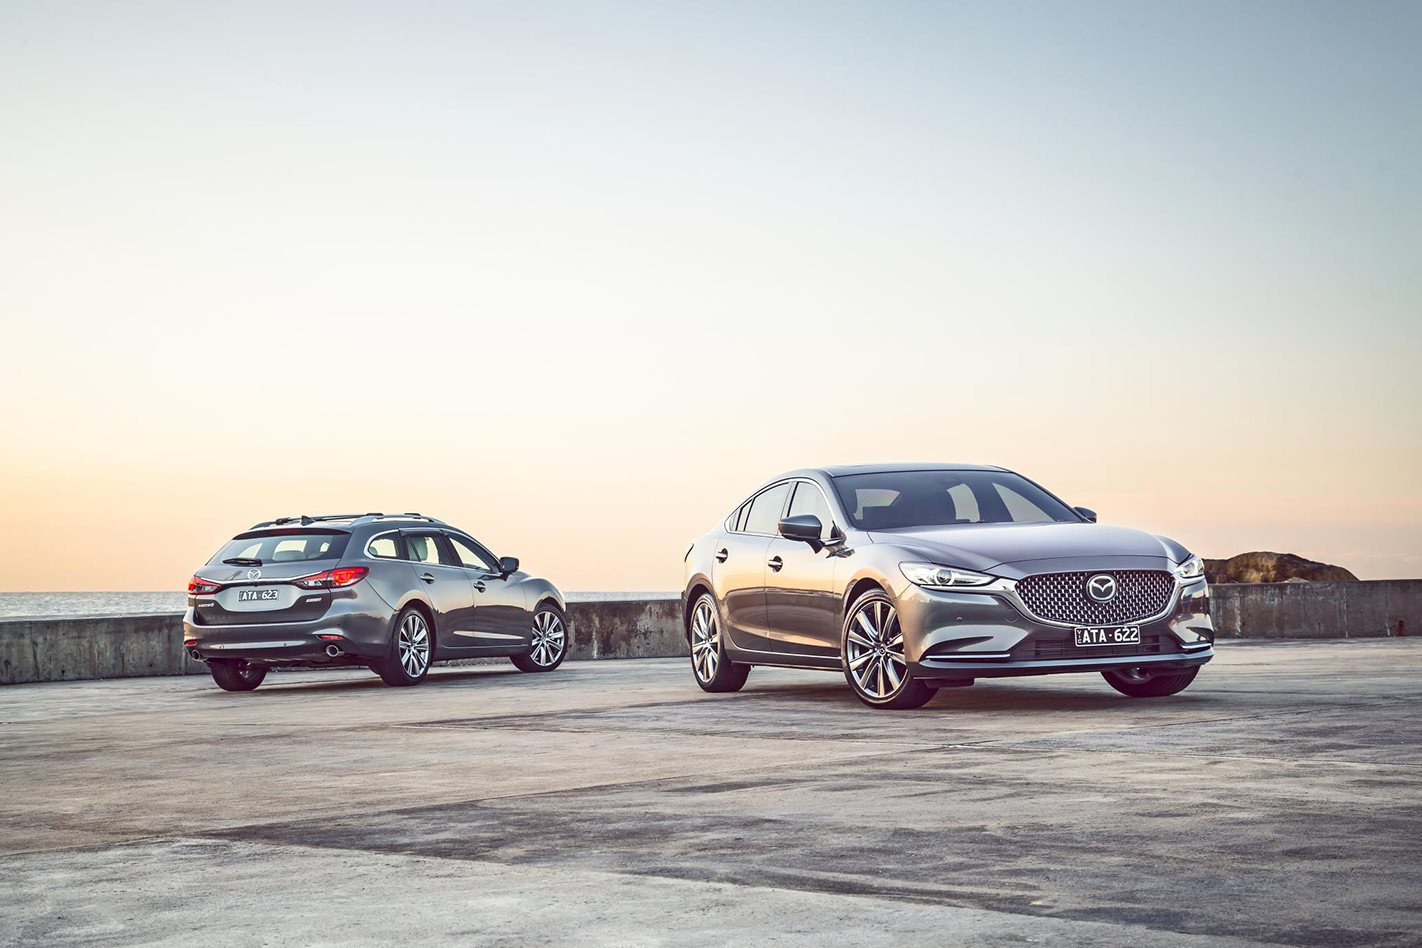 2019 Mazda 6 loses twin-turbo diesel power but gains new tech